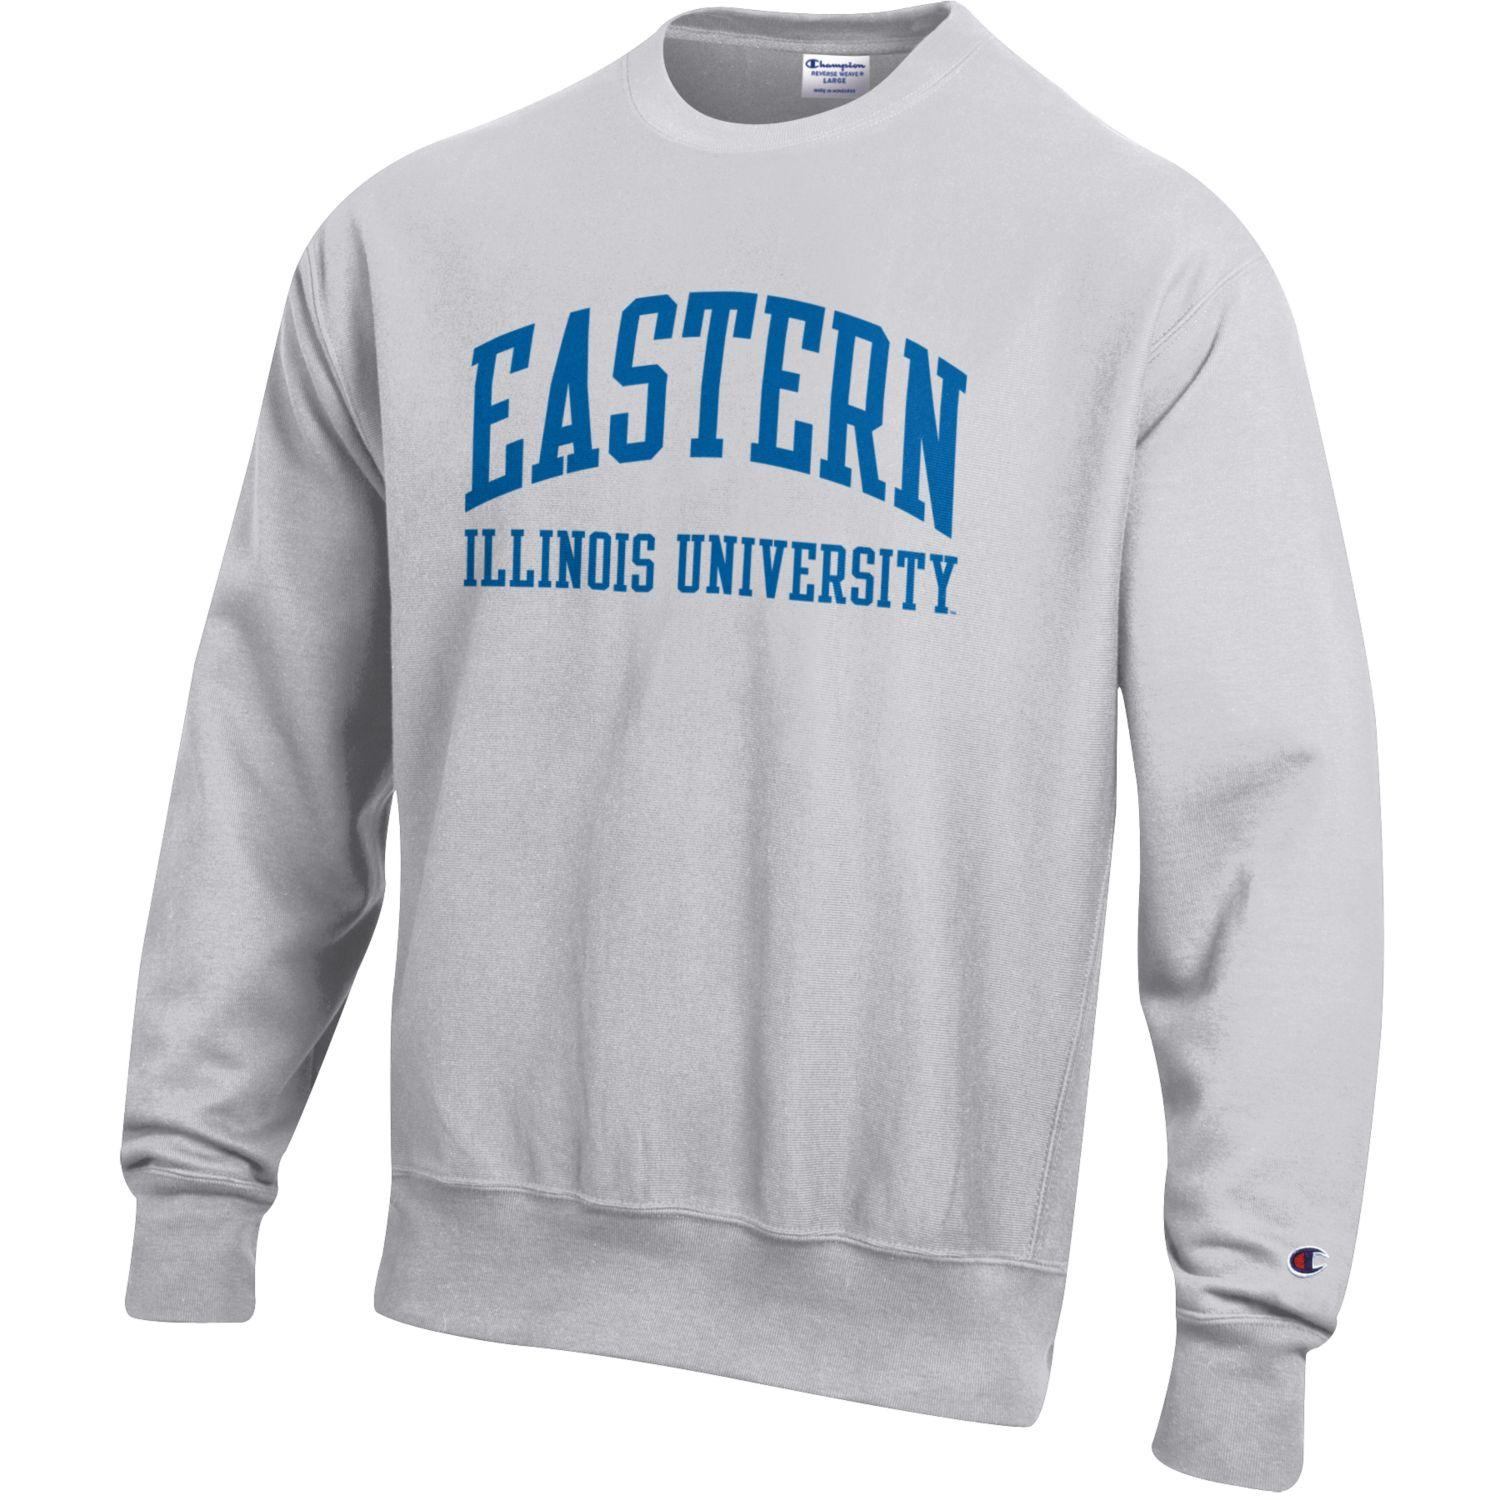 Image For Eastern Illinois University Crew